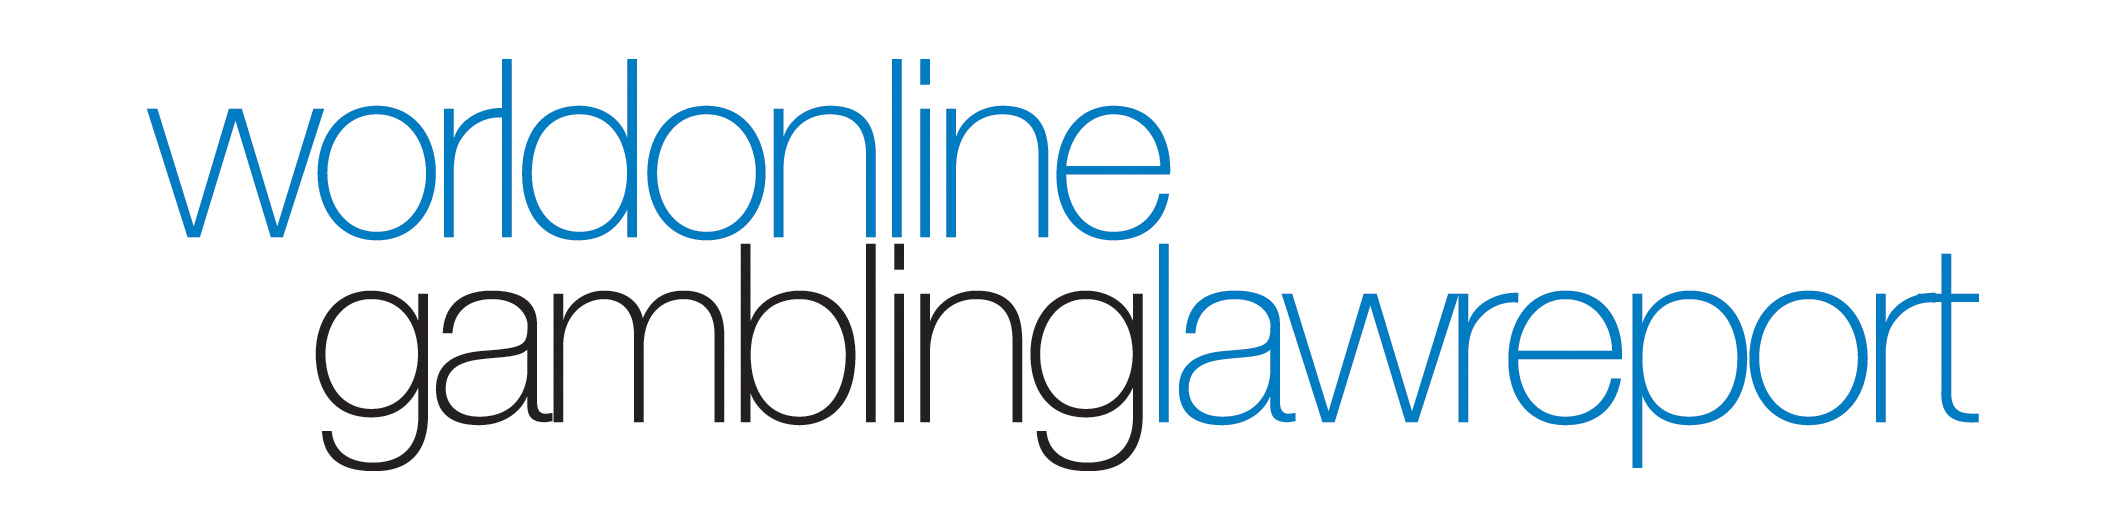 World Online Gambling Law Report